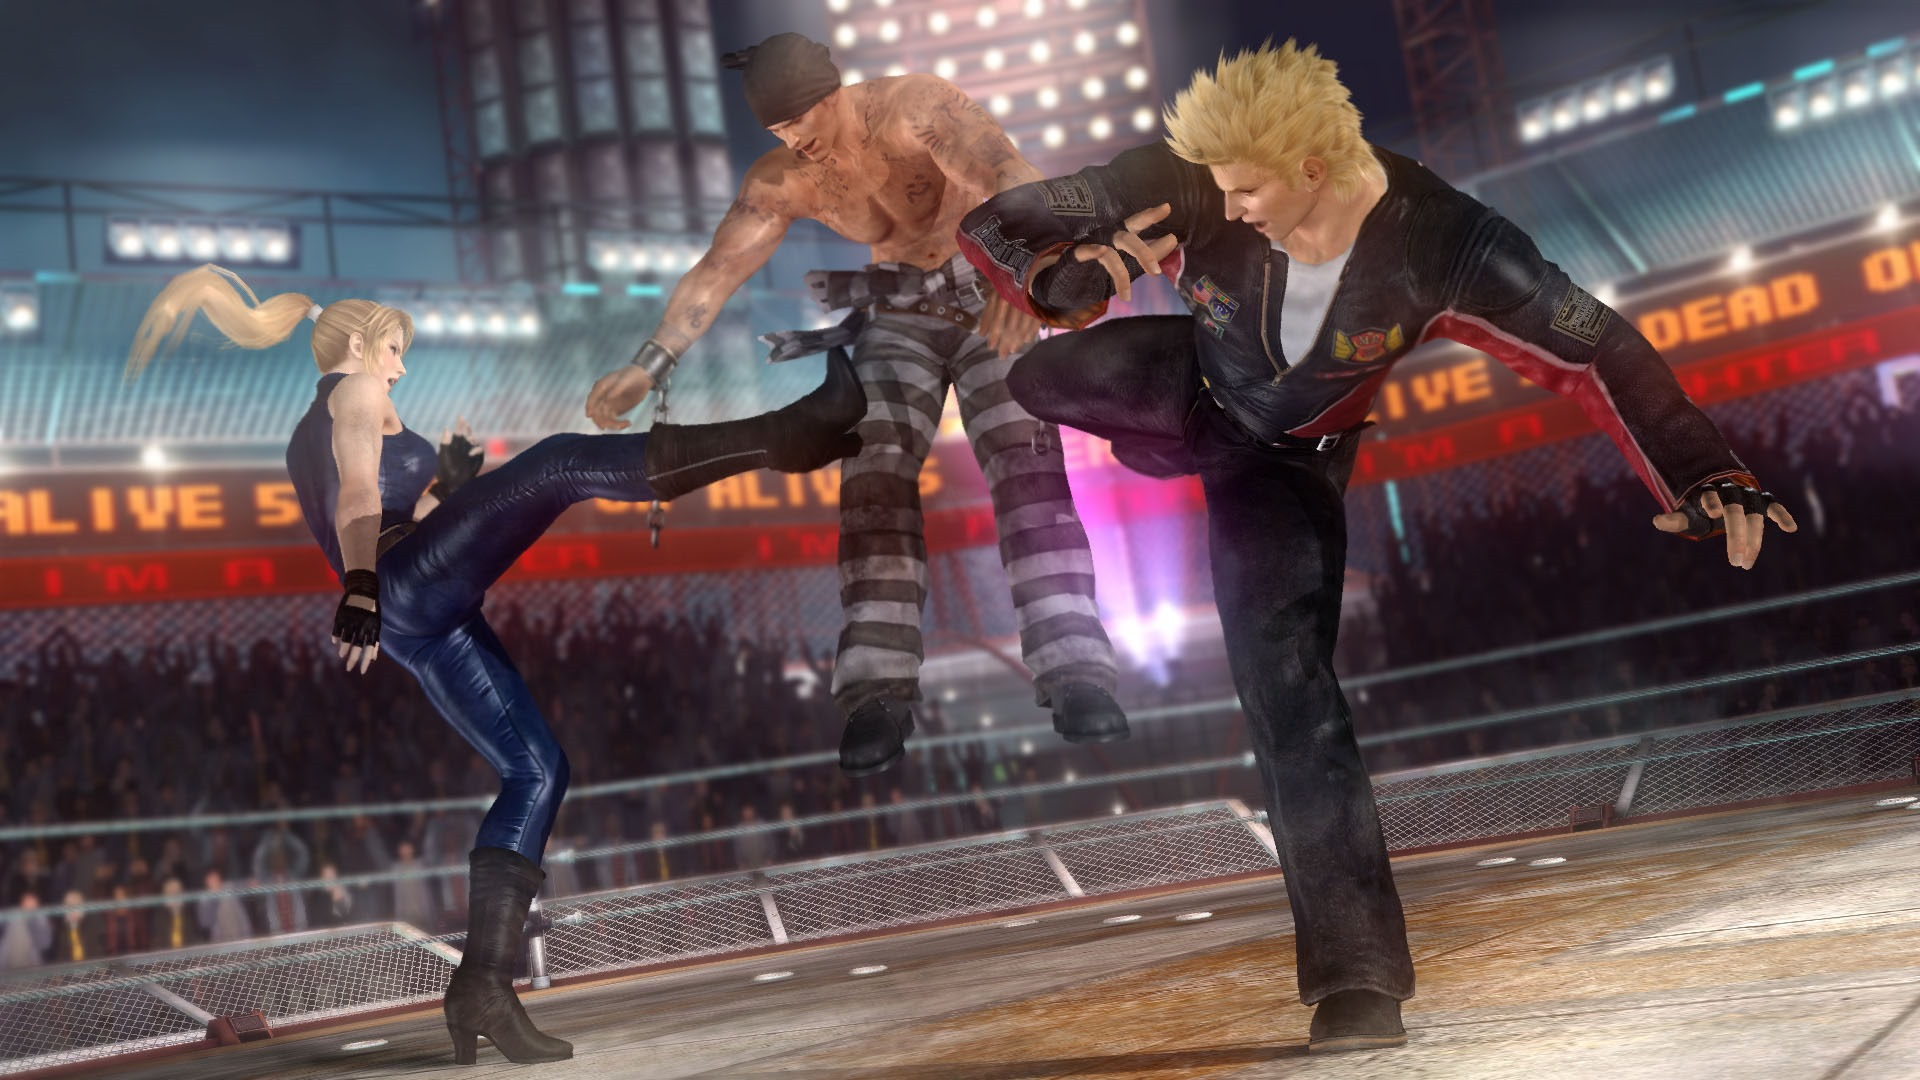 Photo of Dead or Alive 5 Ultimate trailer shows off Virtua Fighter's Jacky and Sarah